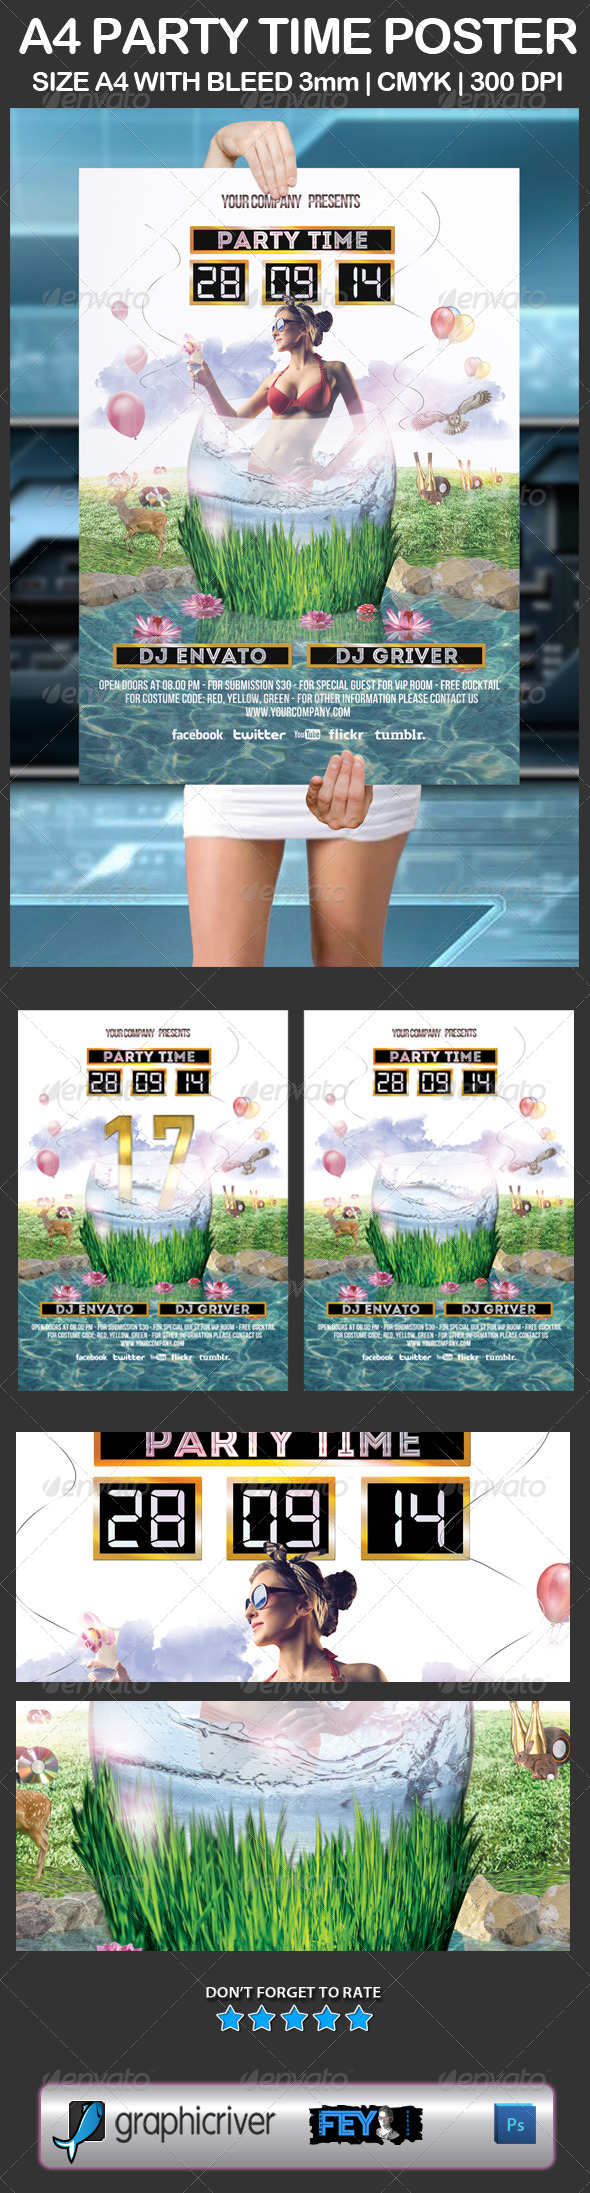 GraphicRiver A4 Party Time Poster 5980709